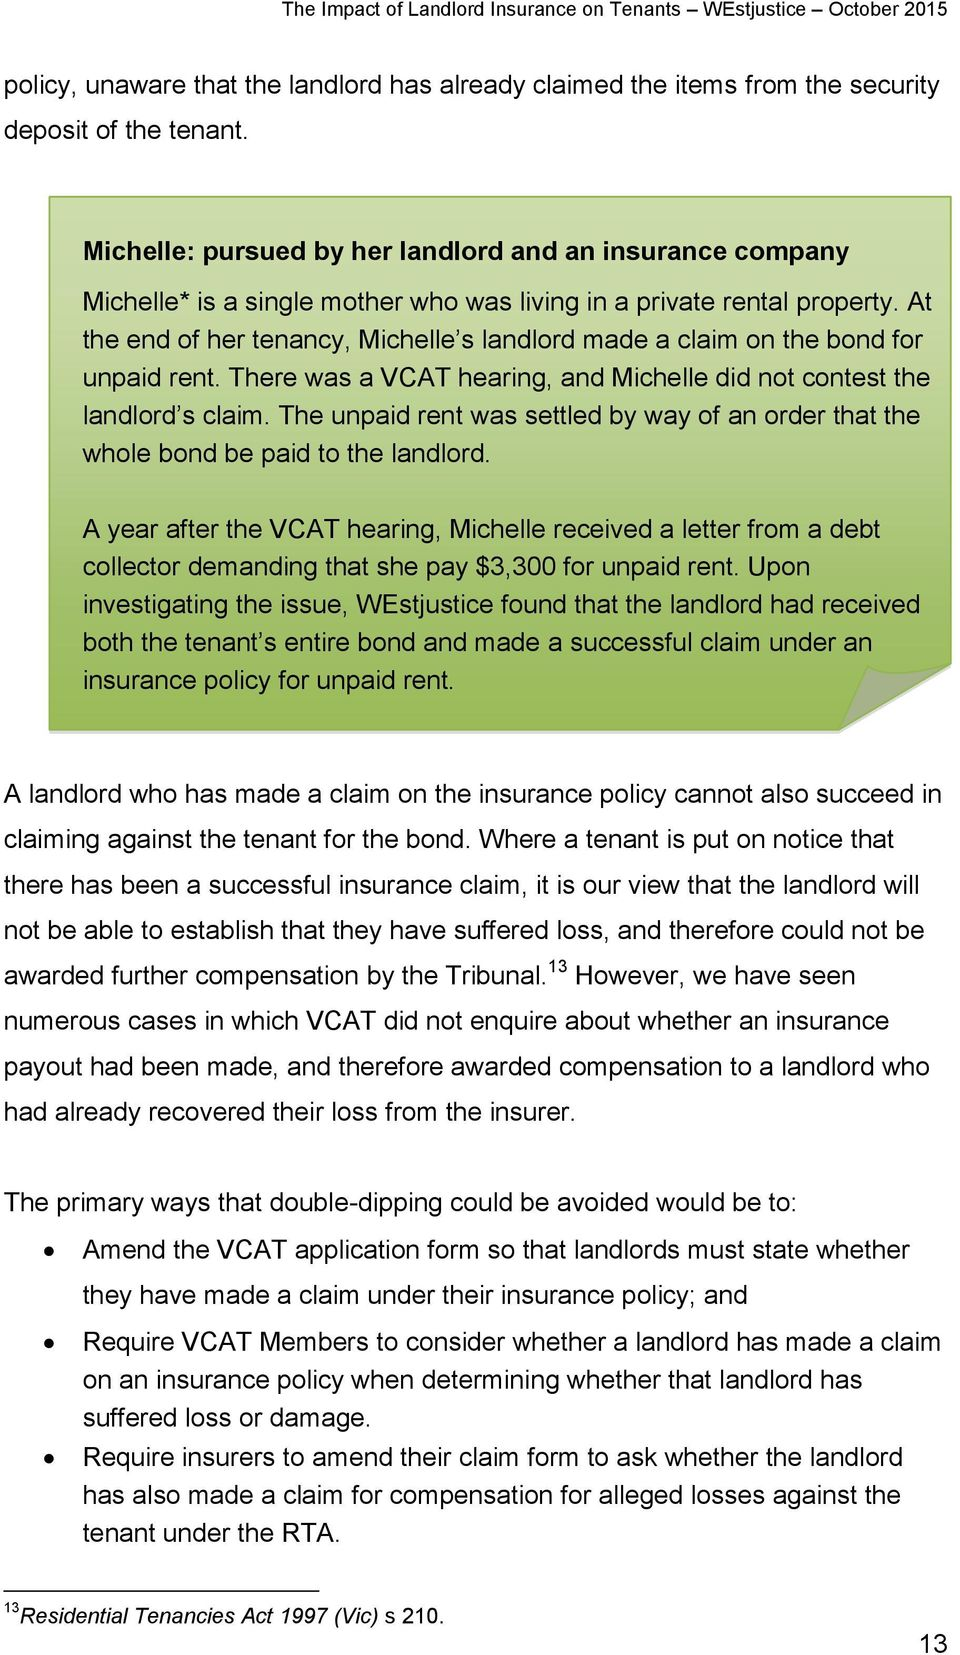 At the end of her tenancy, Michelle s landlord made a claim on the bond for unpaid rent. There was a VCAT hearing, and Michelle did not contest the landlord s claim.